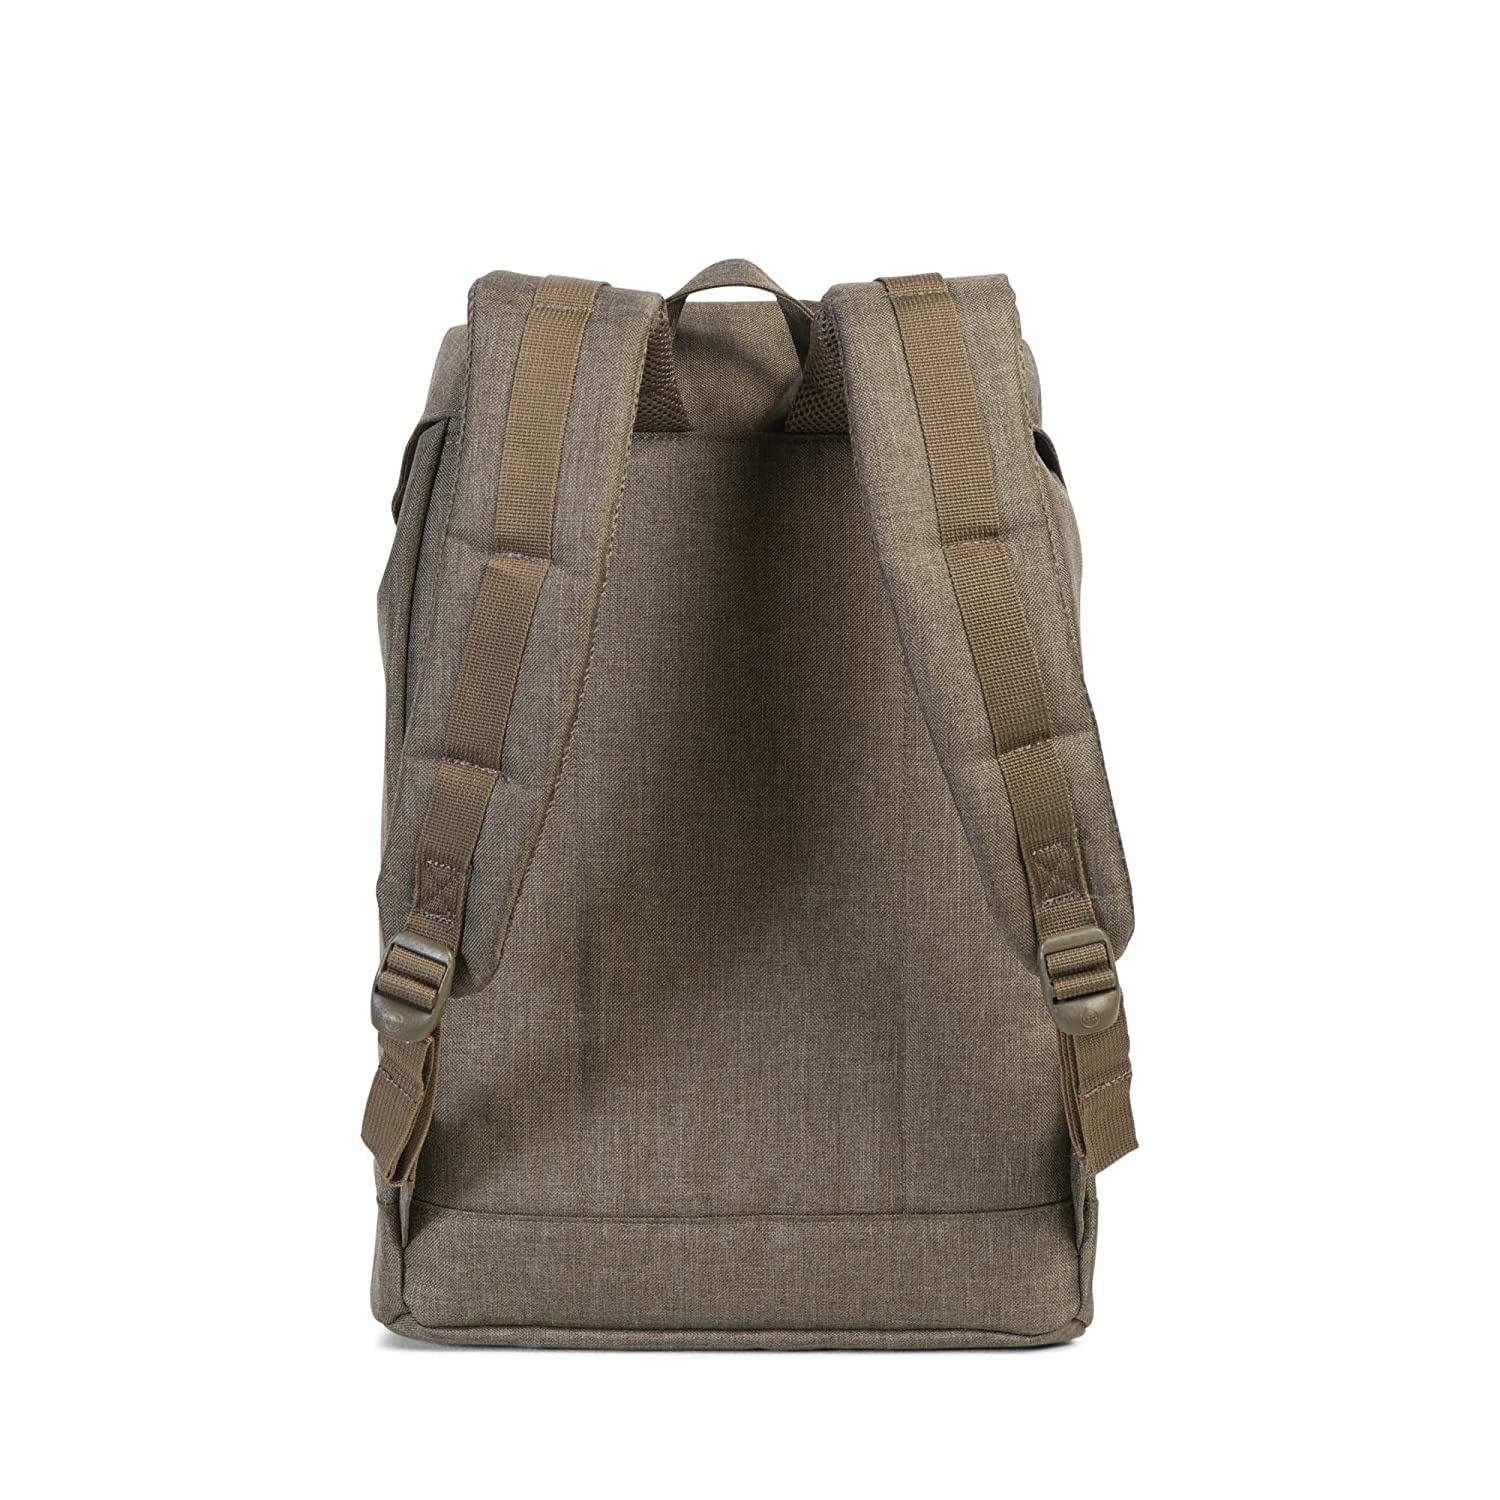 Herschel Supply Co. Little America Backpack, Canteen Crosshatch Tan  Synthetic Leather  Amazon.ca  Luggage   Bags 669d4942ef